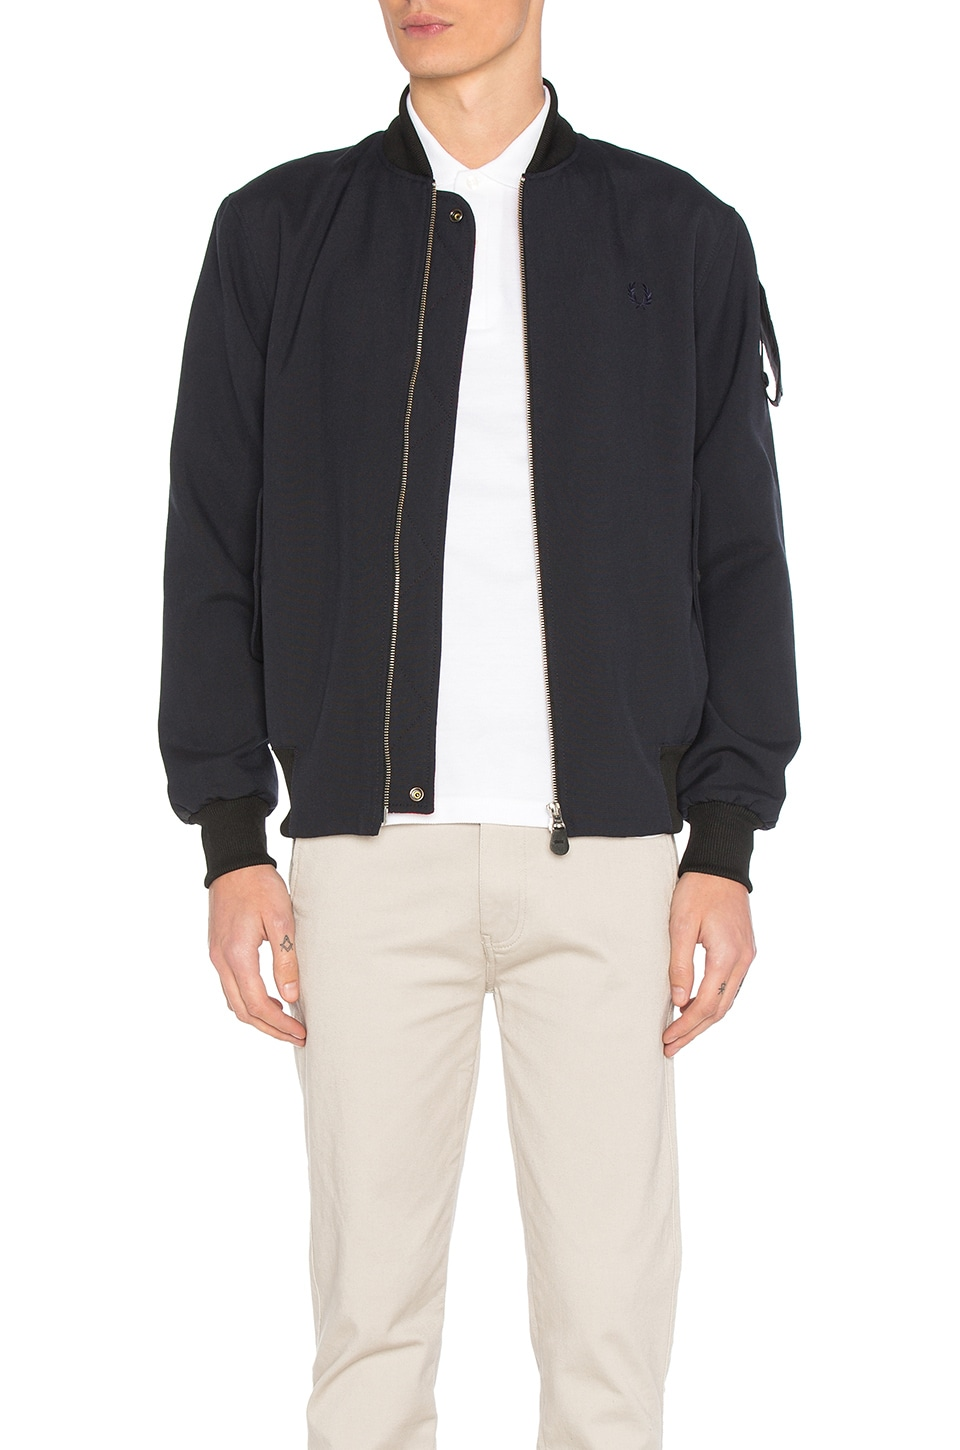 x Art Comes First Bomber Jacket by Fred Perry